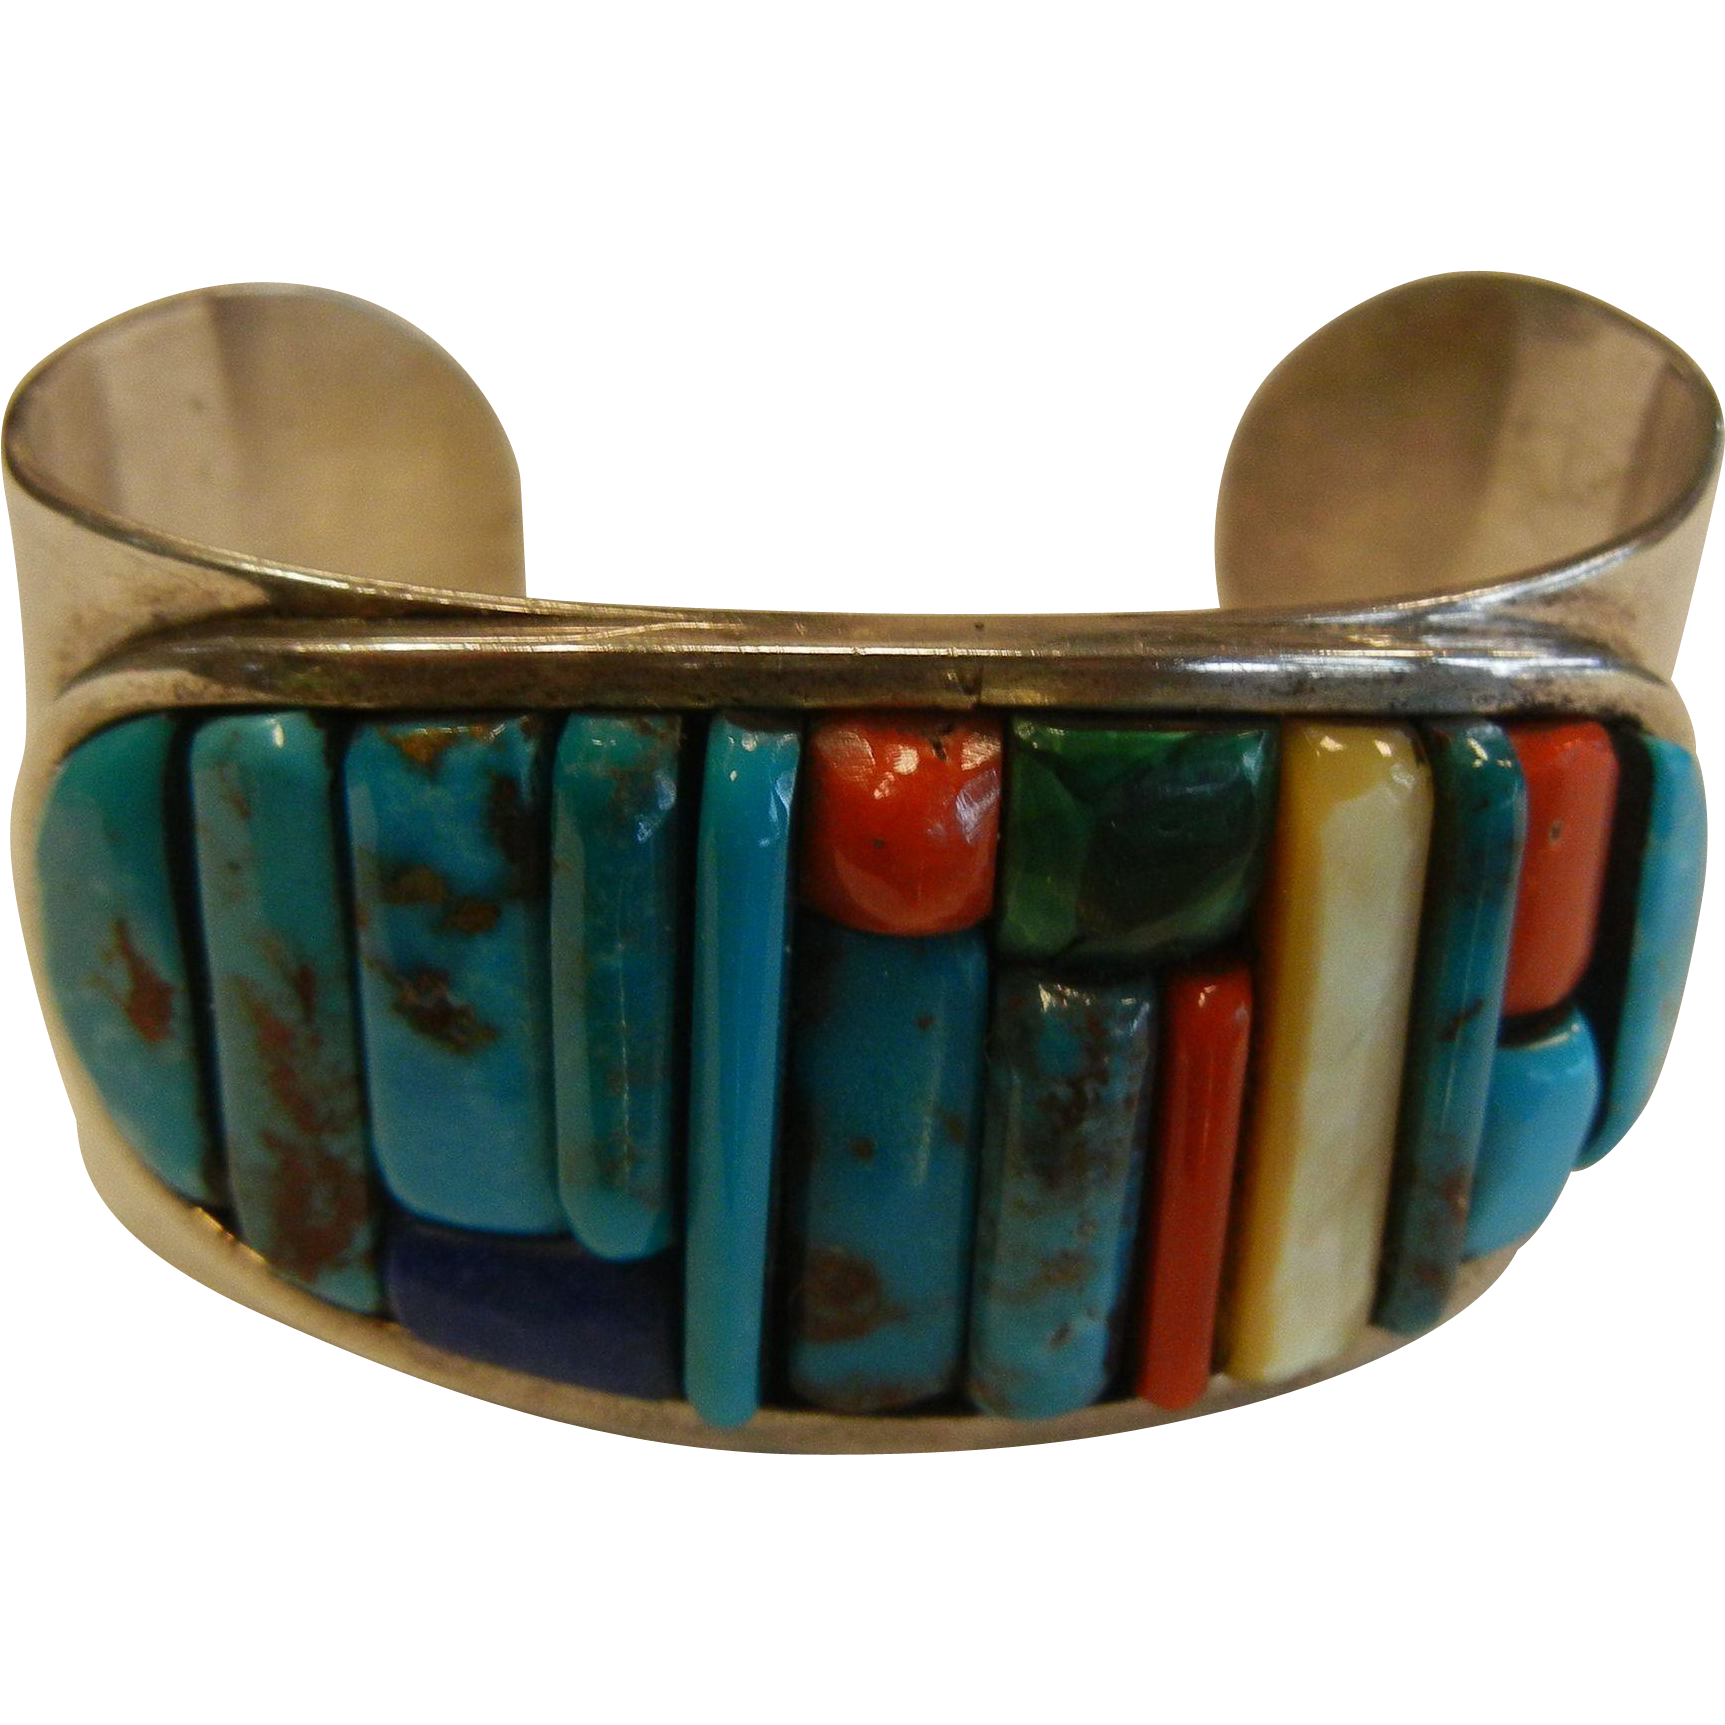 Exquisite Native American Sterling Silver Cuff Bracelet w/ Polished Natural Stones